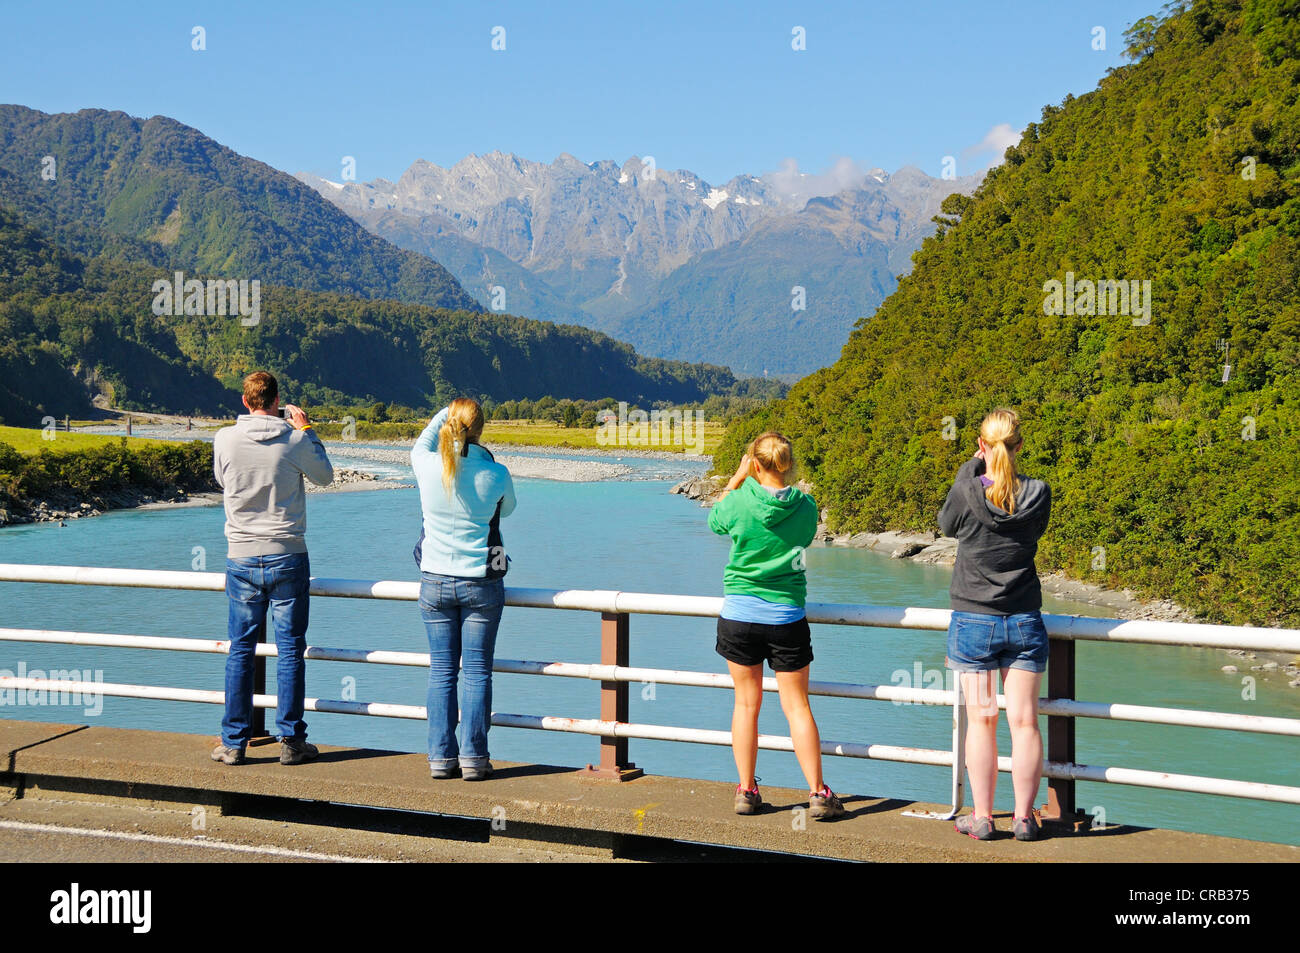 Tourists taking photographs of Whataroa River, looking towards the Southern Alps, West Coast of the South Island - Stock Image